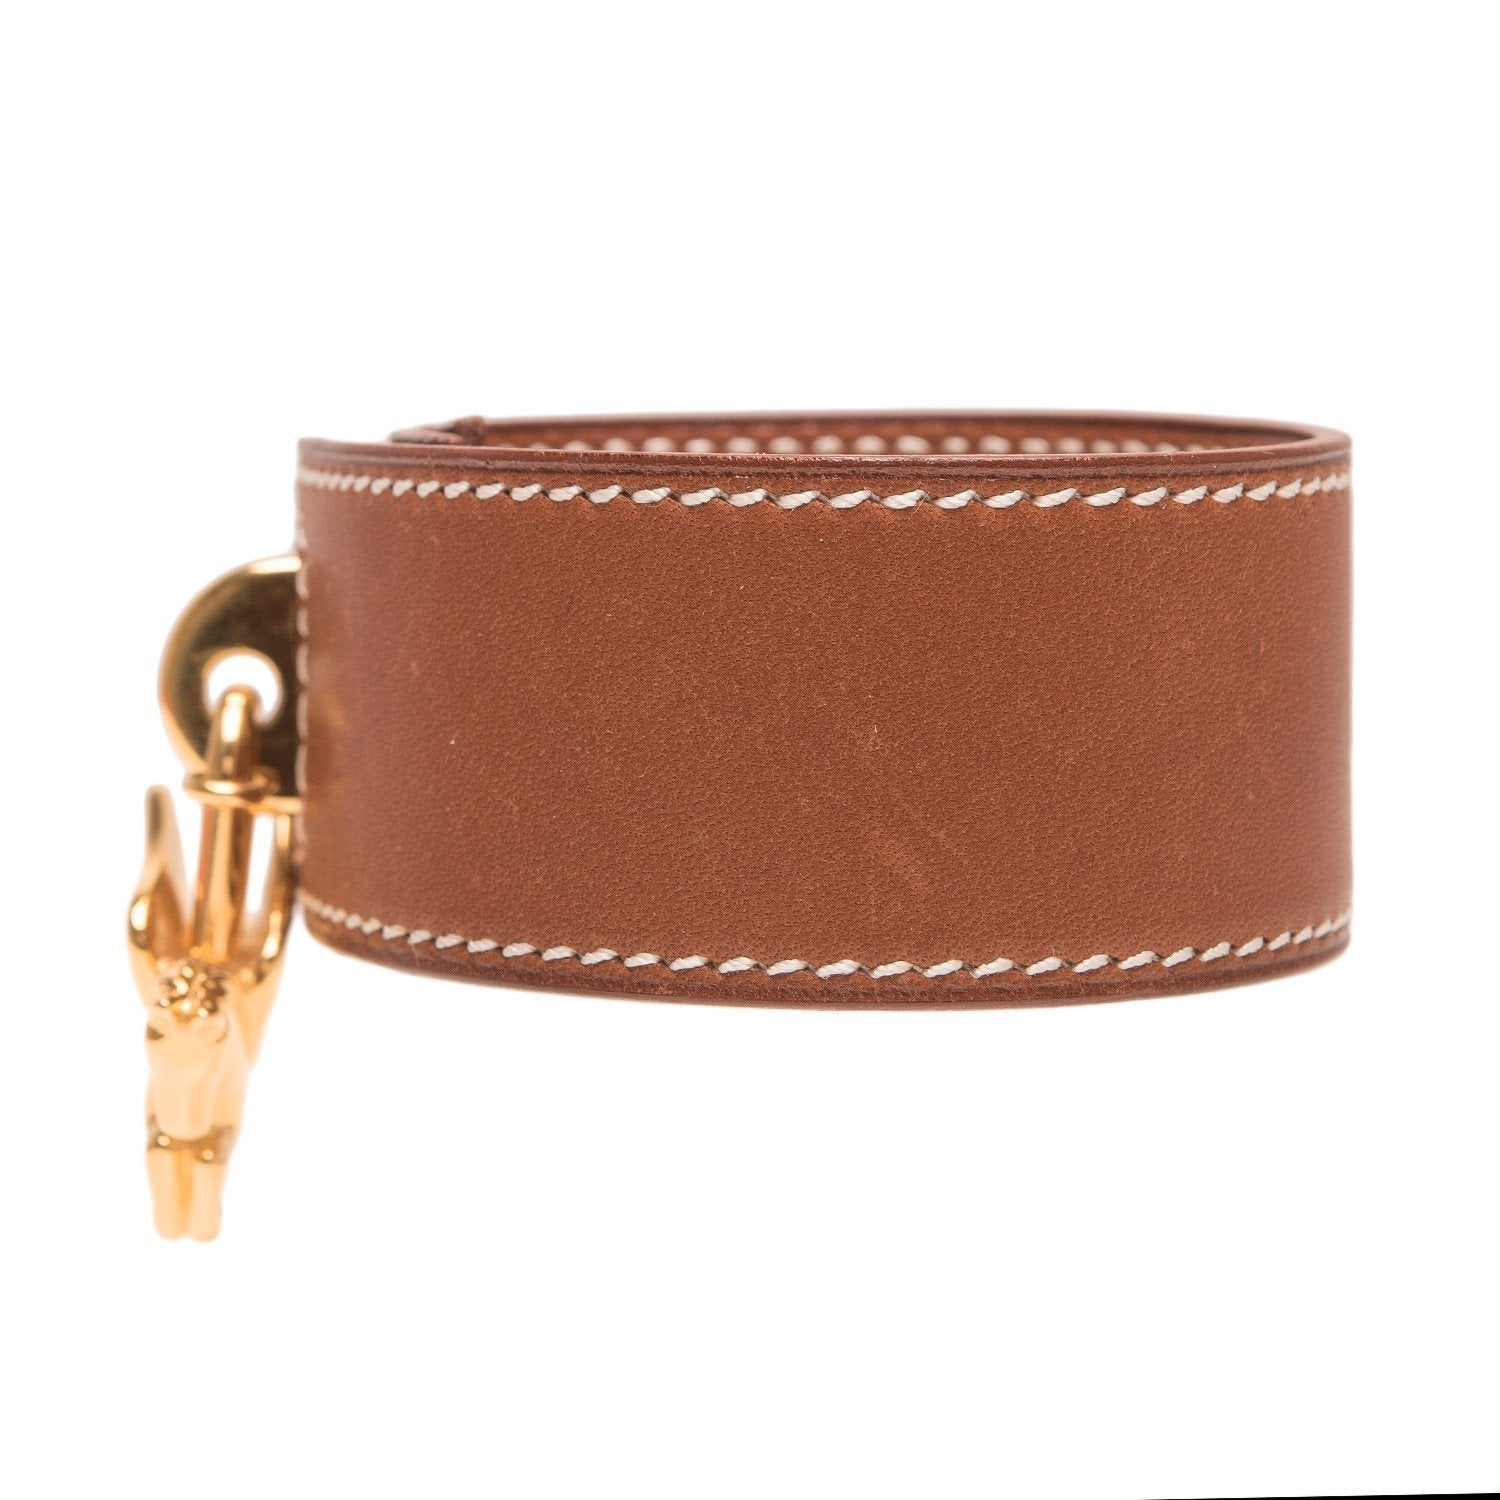 Hermes Gold Barenia Leather Bracelet With Pegasus Charm Accessories